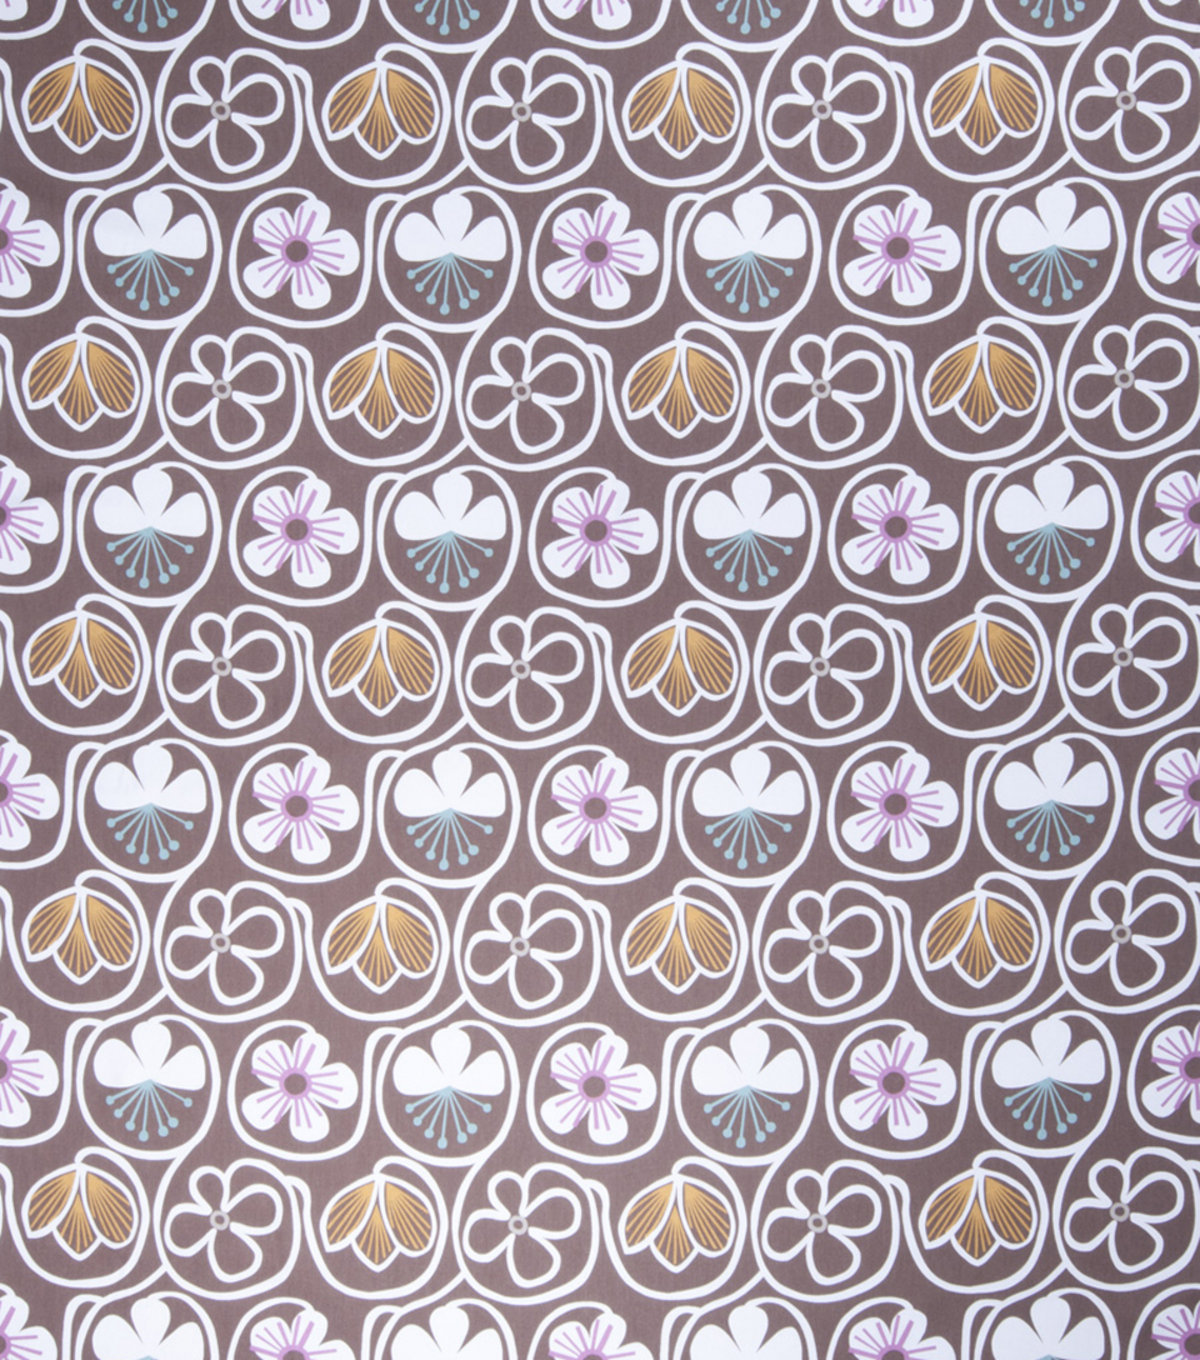 Home Decor 8\u0022x8\u0022 Fabric Swatch-Eaton Square Gershwin Chocolate